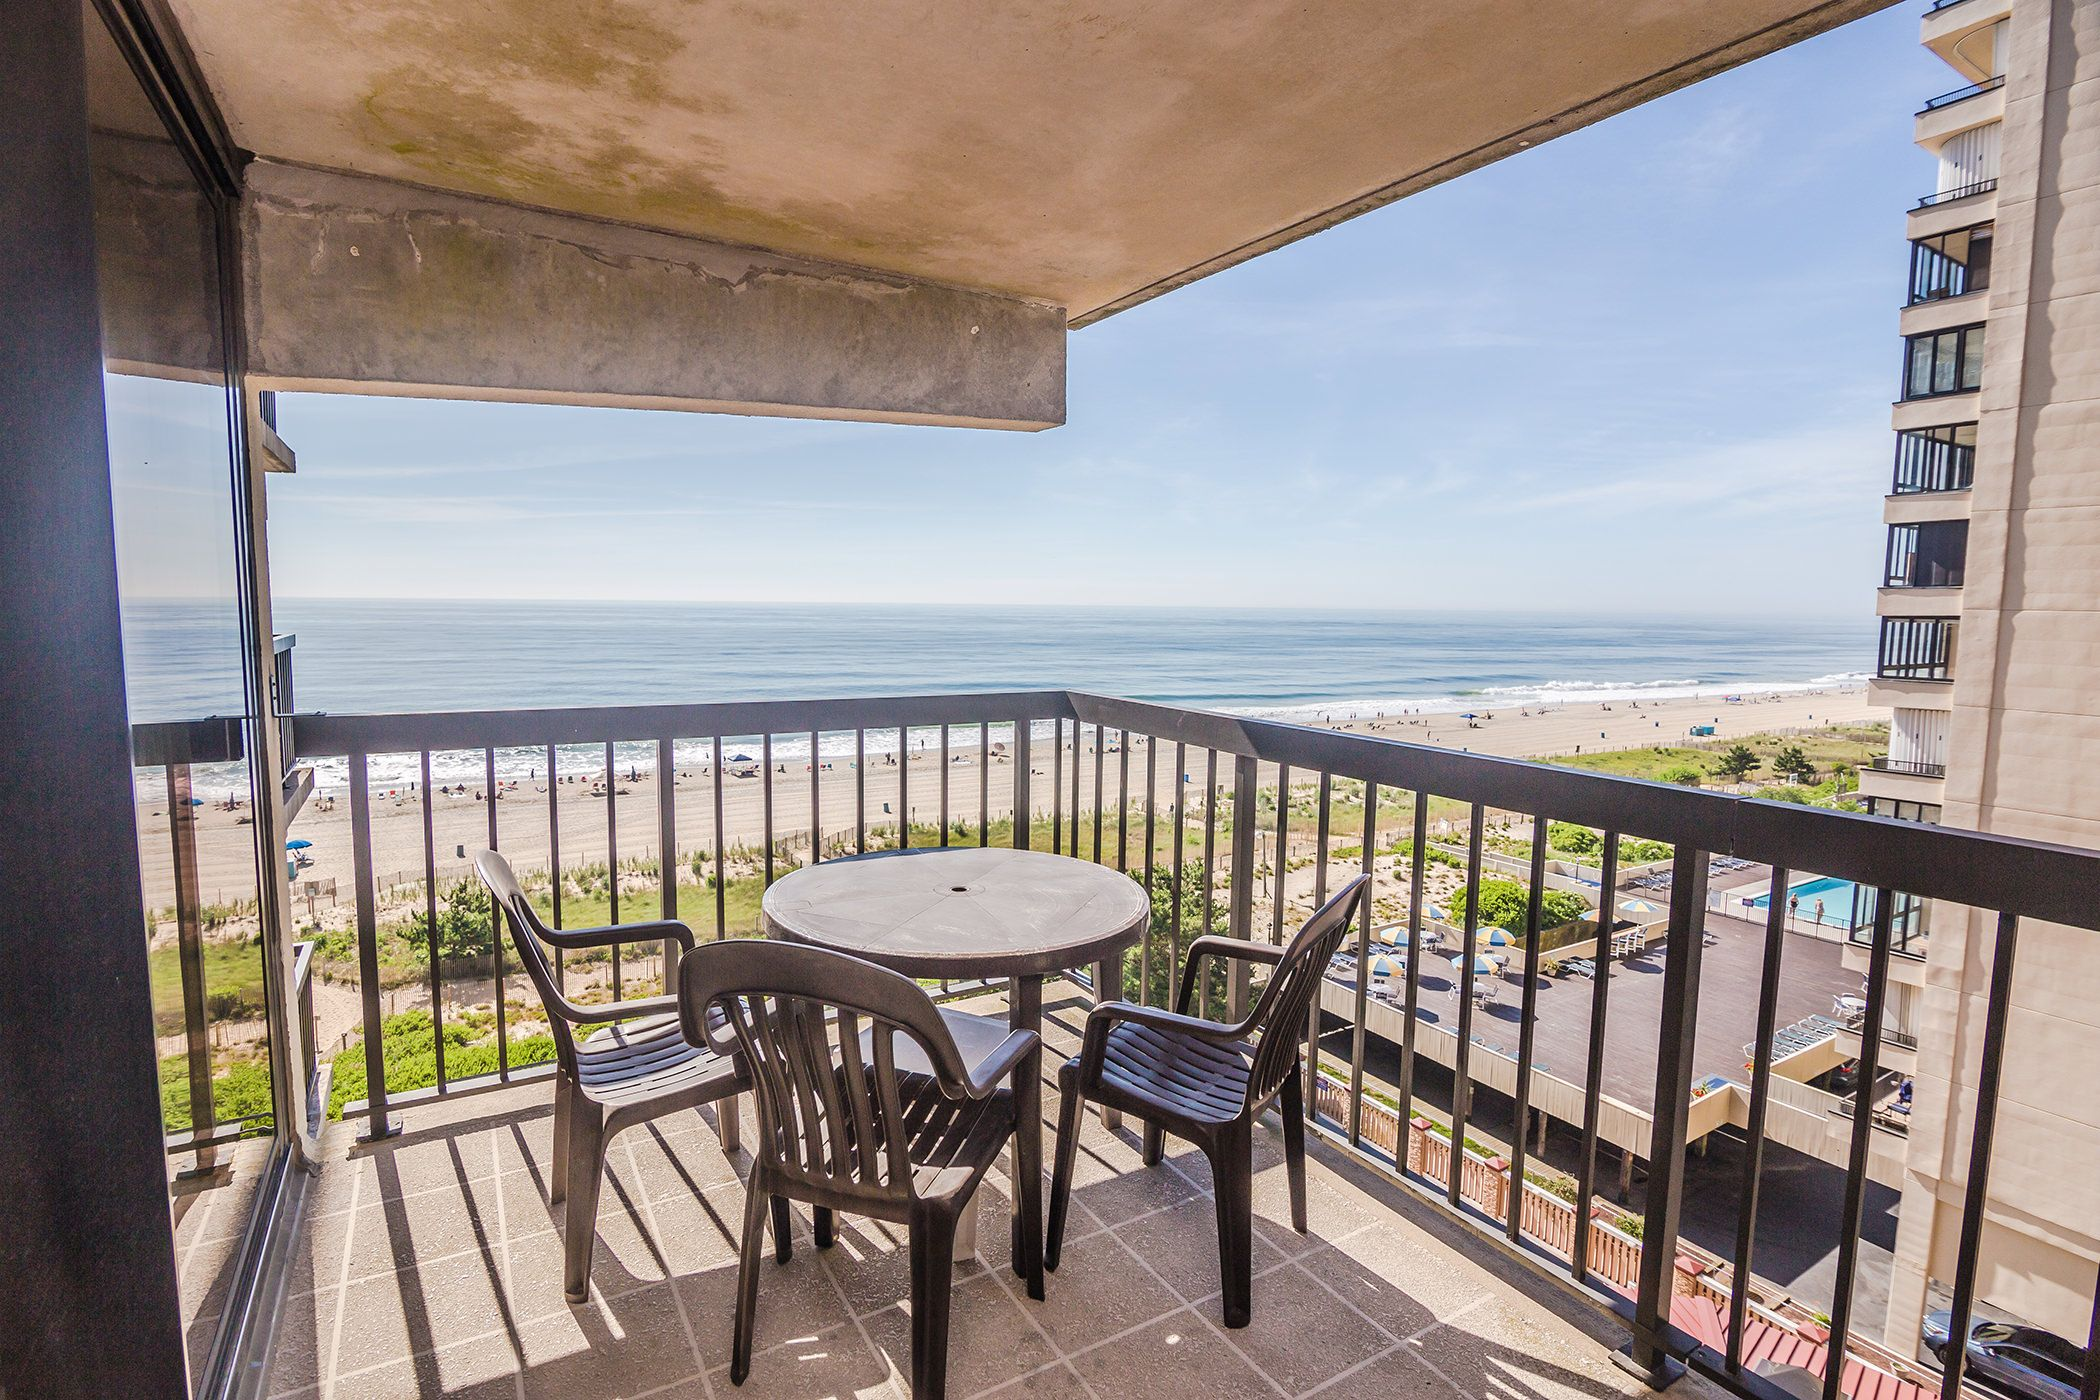 Breakfast On The Terrace Like At Tiffany S But With A Better View Ocean City Rentals Ocean City Ocean City Md